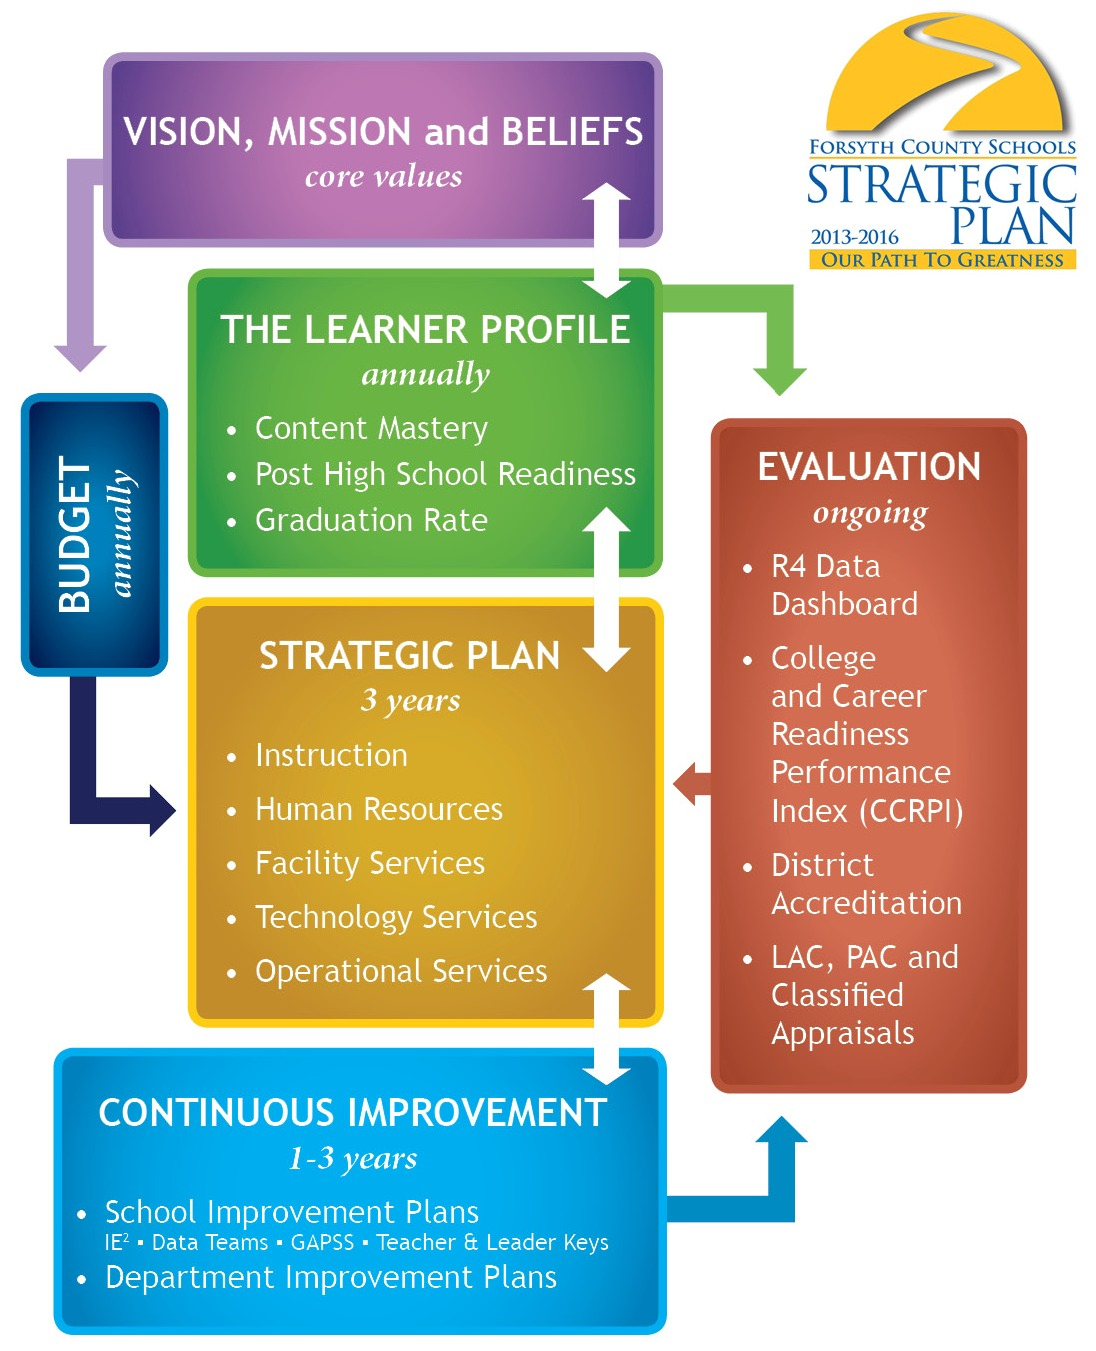 public information communications 2013 16 strategic plan final click here for the strategic planning process diagram